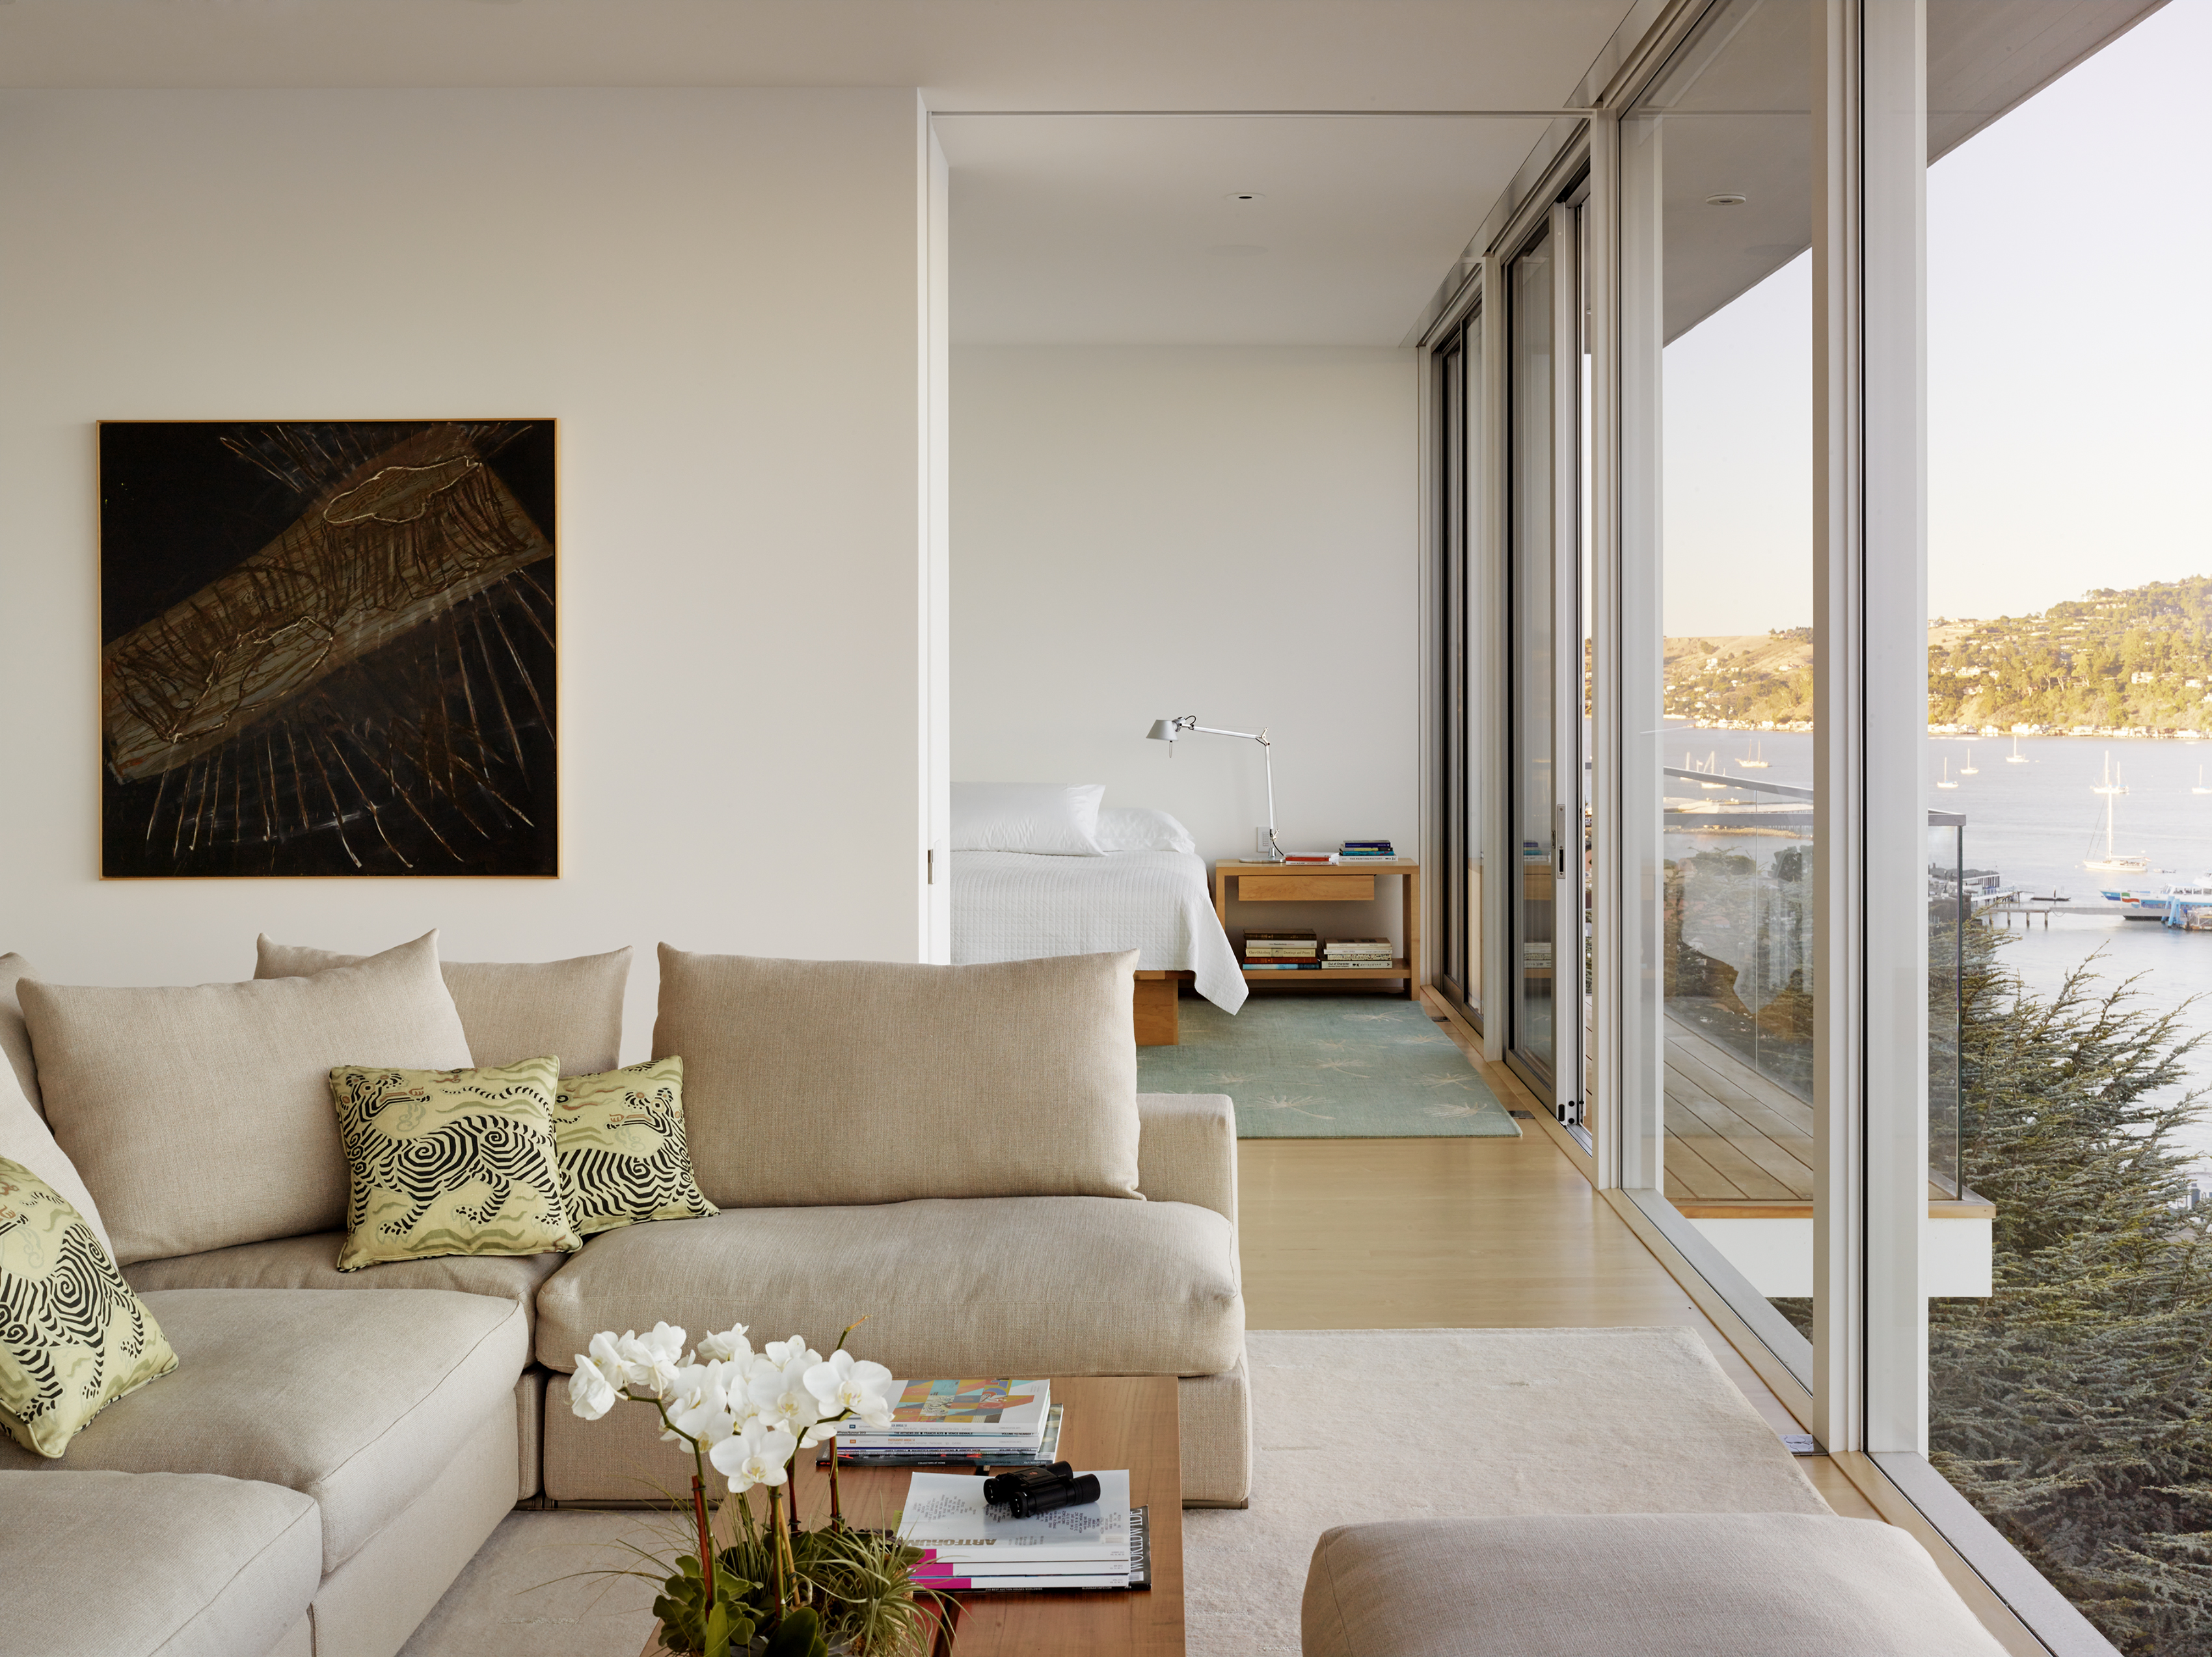 From the library, the living room is just a short few steps down the hallway. The plush sectional looks directly out of the floor-to-ceiling windows towards the bay, with no other distracting focal points, like a television.